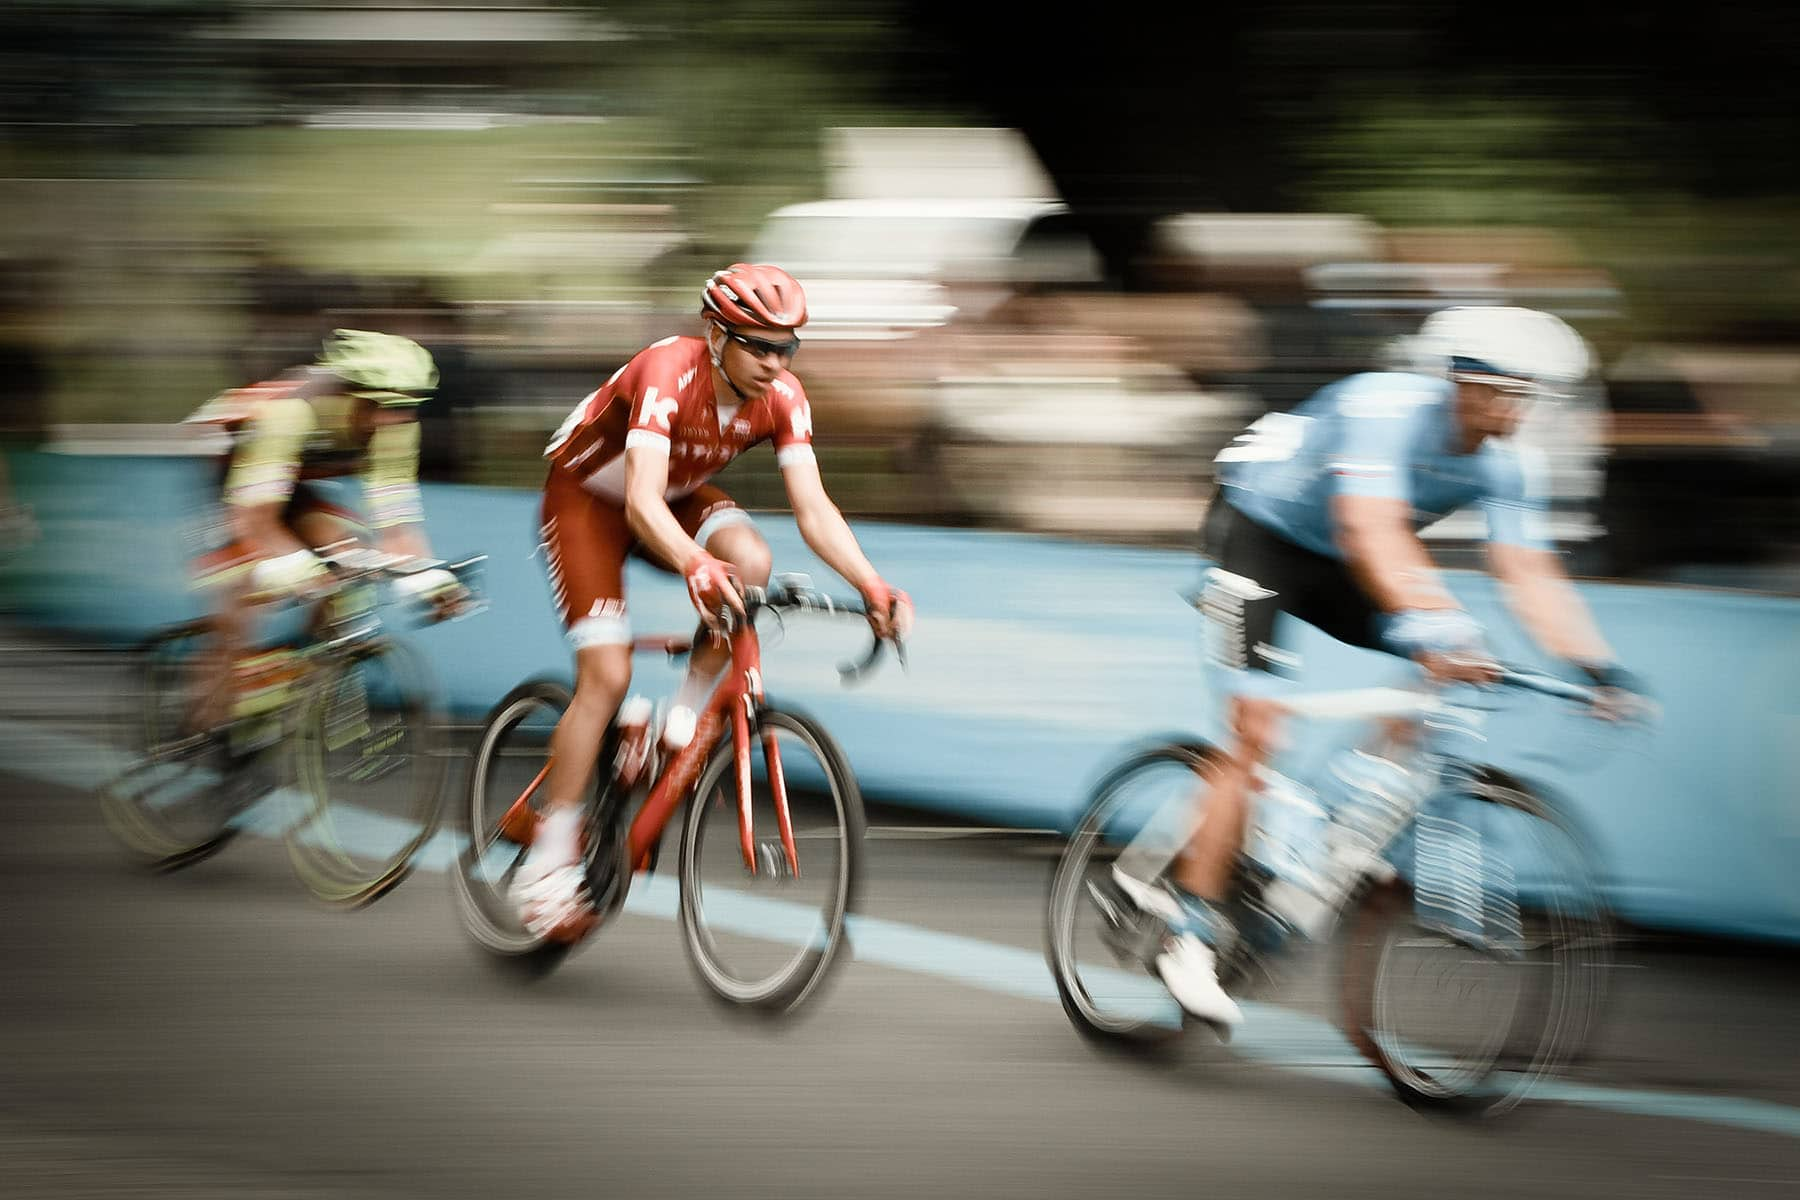 Three men racing on bicycles